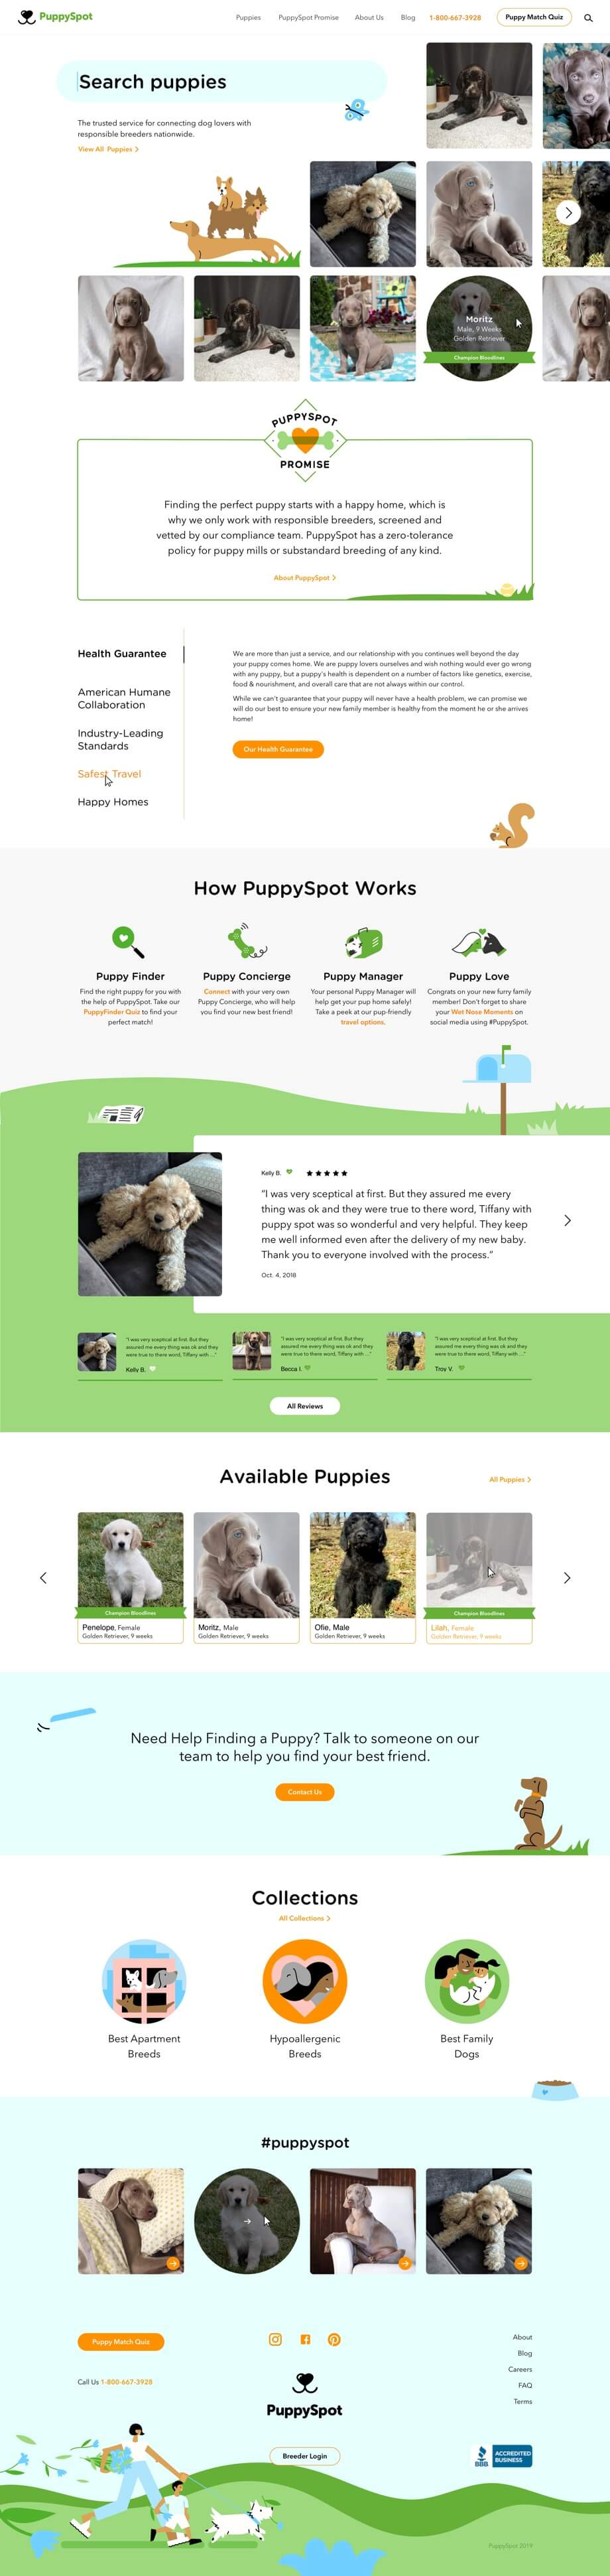 Puppy Spot pages